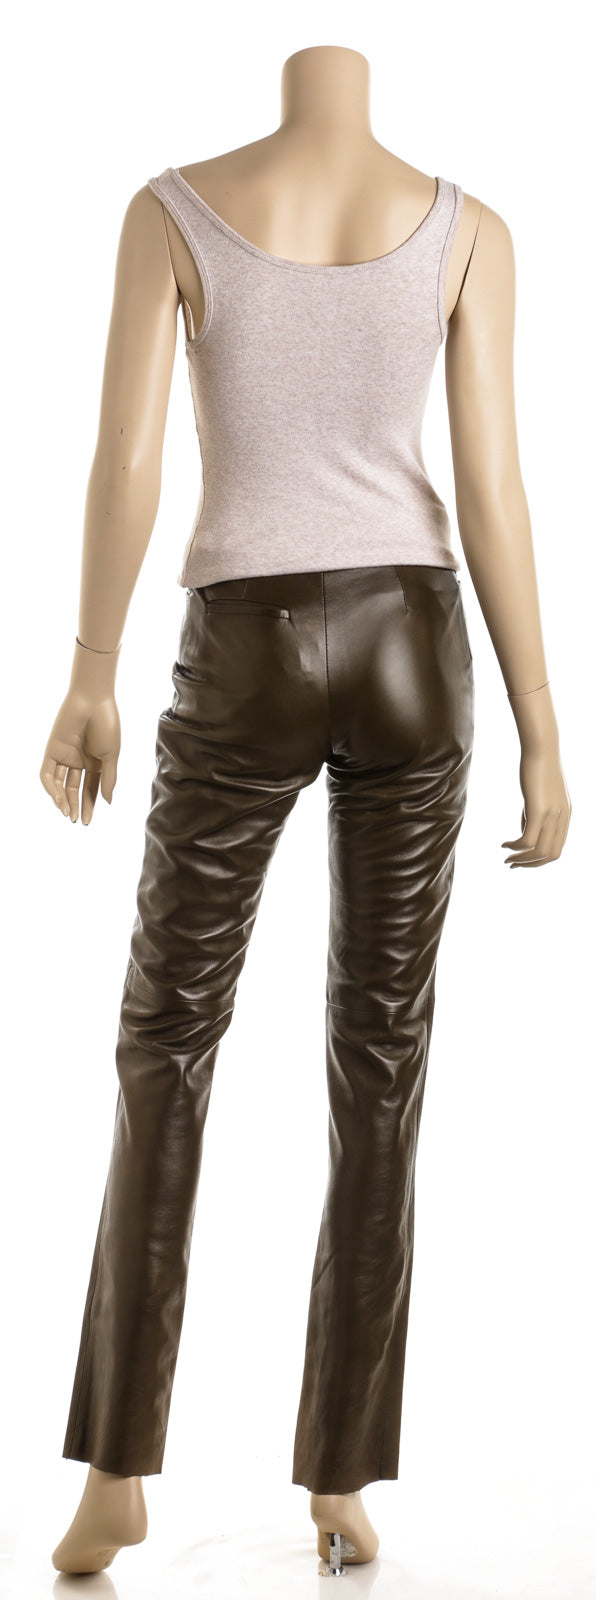 Gucci Olive Green Leather Pants (Size 38)